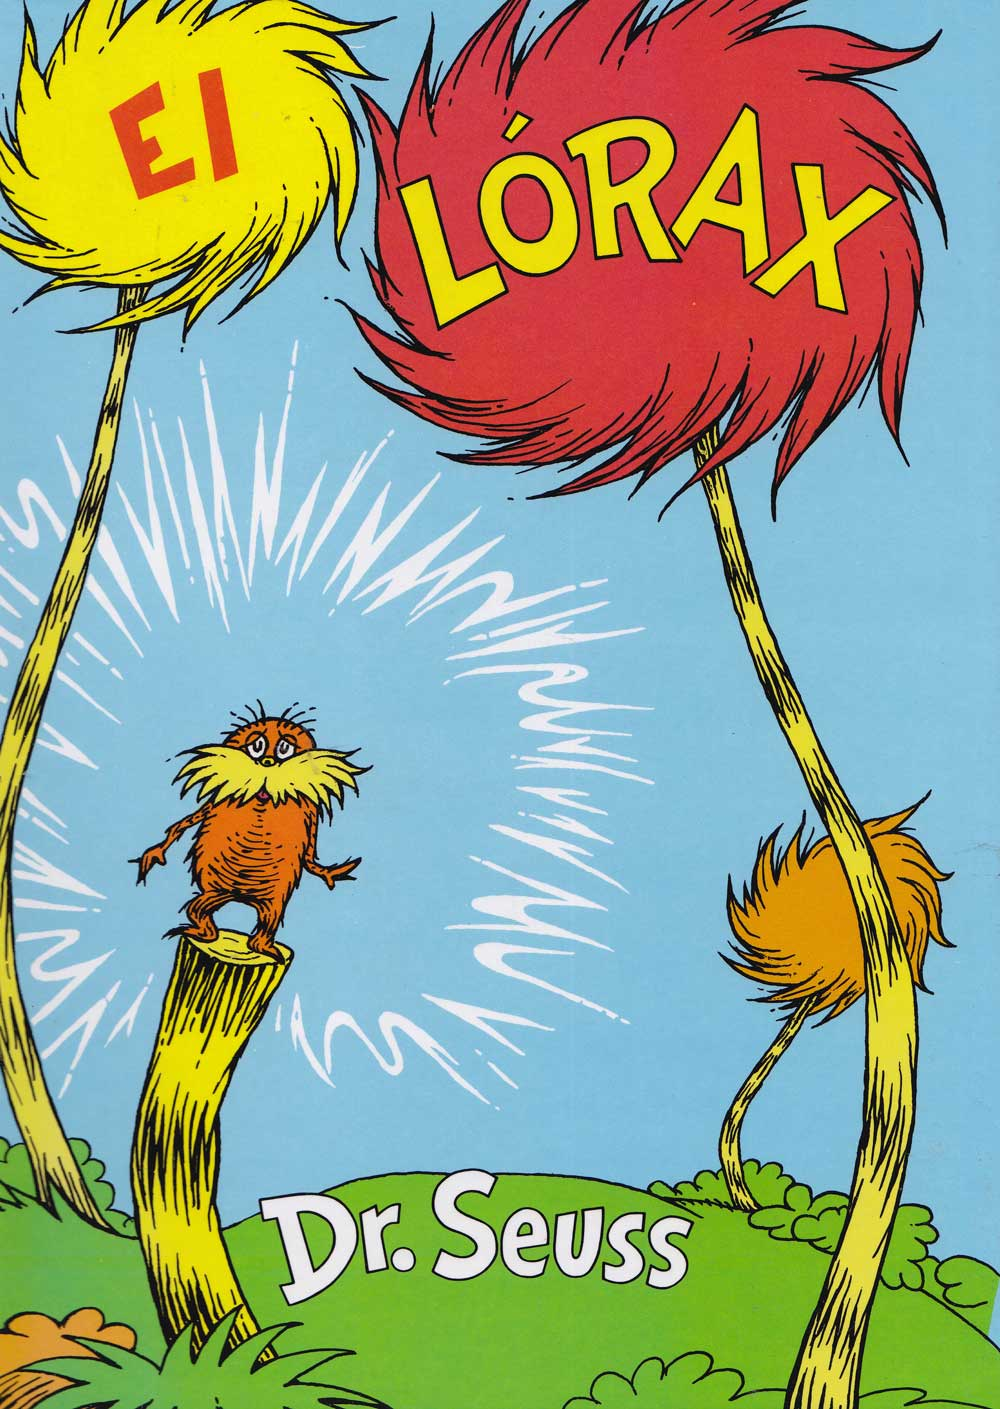 El Lorax, The Lorax, Del Sol Books